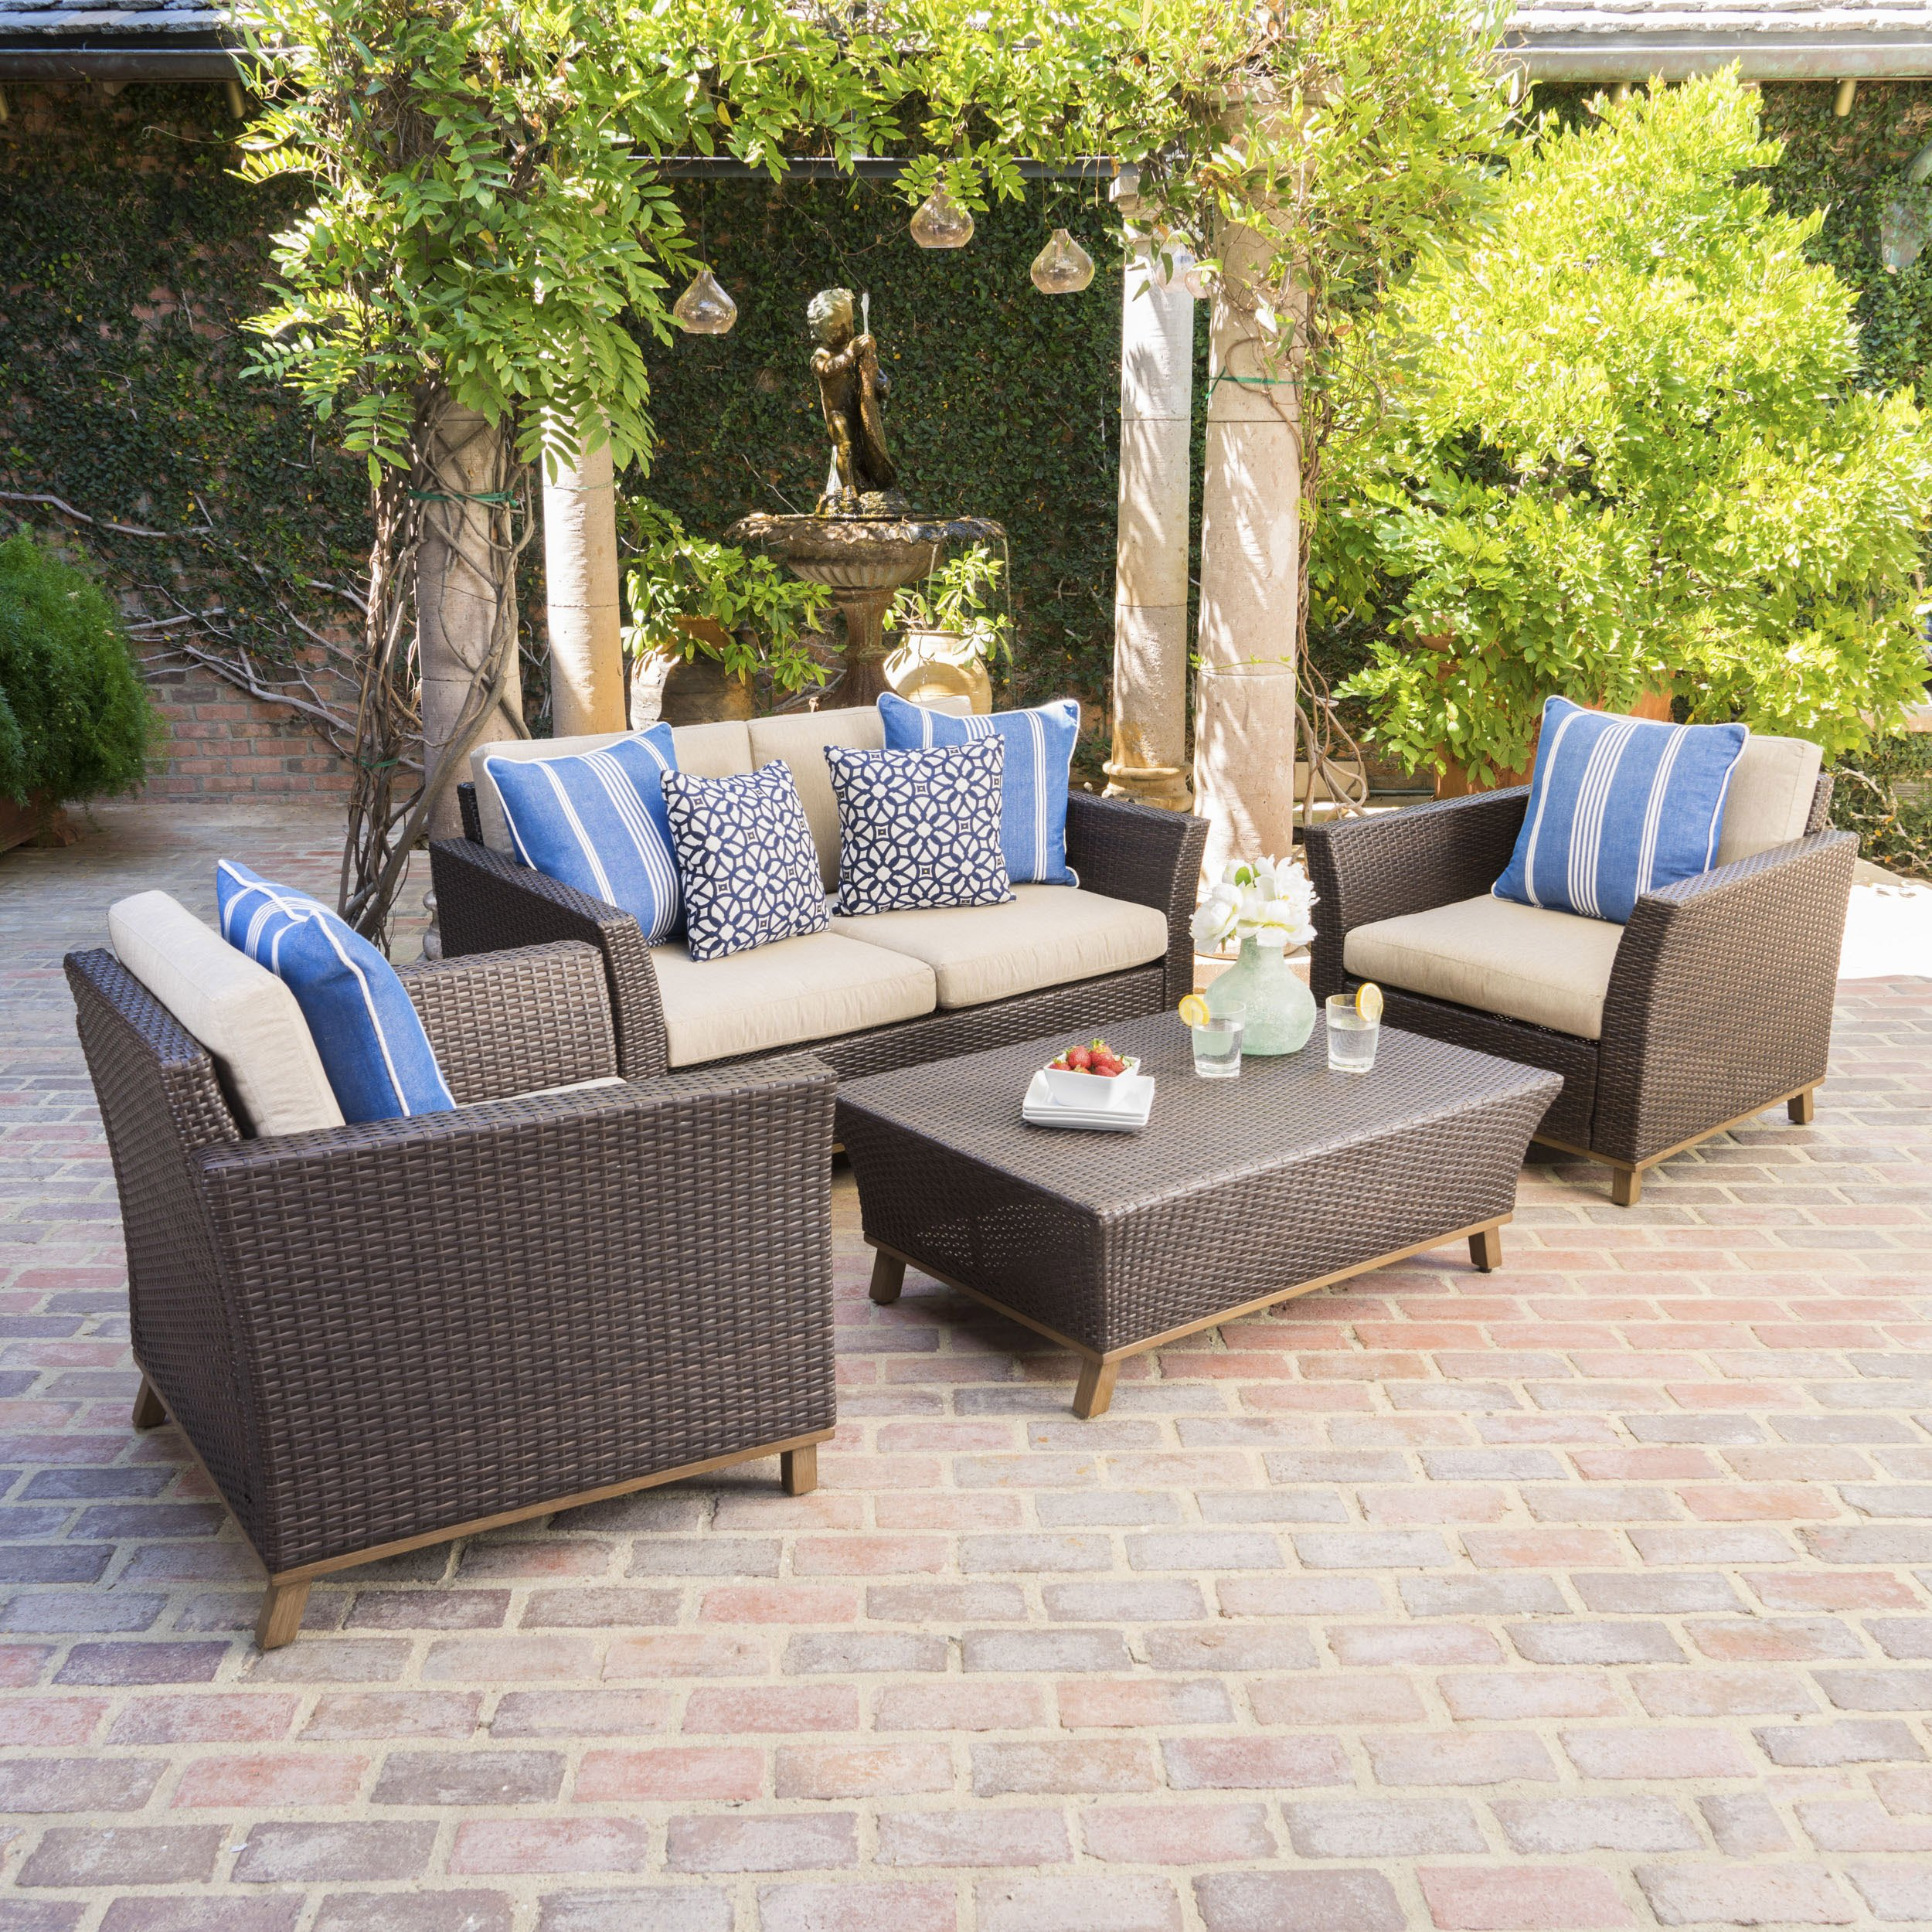 Grady Outdoor Patio Furniture, Aluminum-Framed Outdoor Chat Set Seats Four Comfortably, Durable, All-Weather Cushions, Outdoor Wicker Patio Seating Set with Table